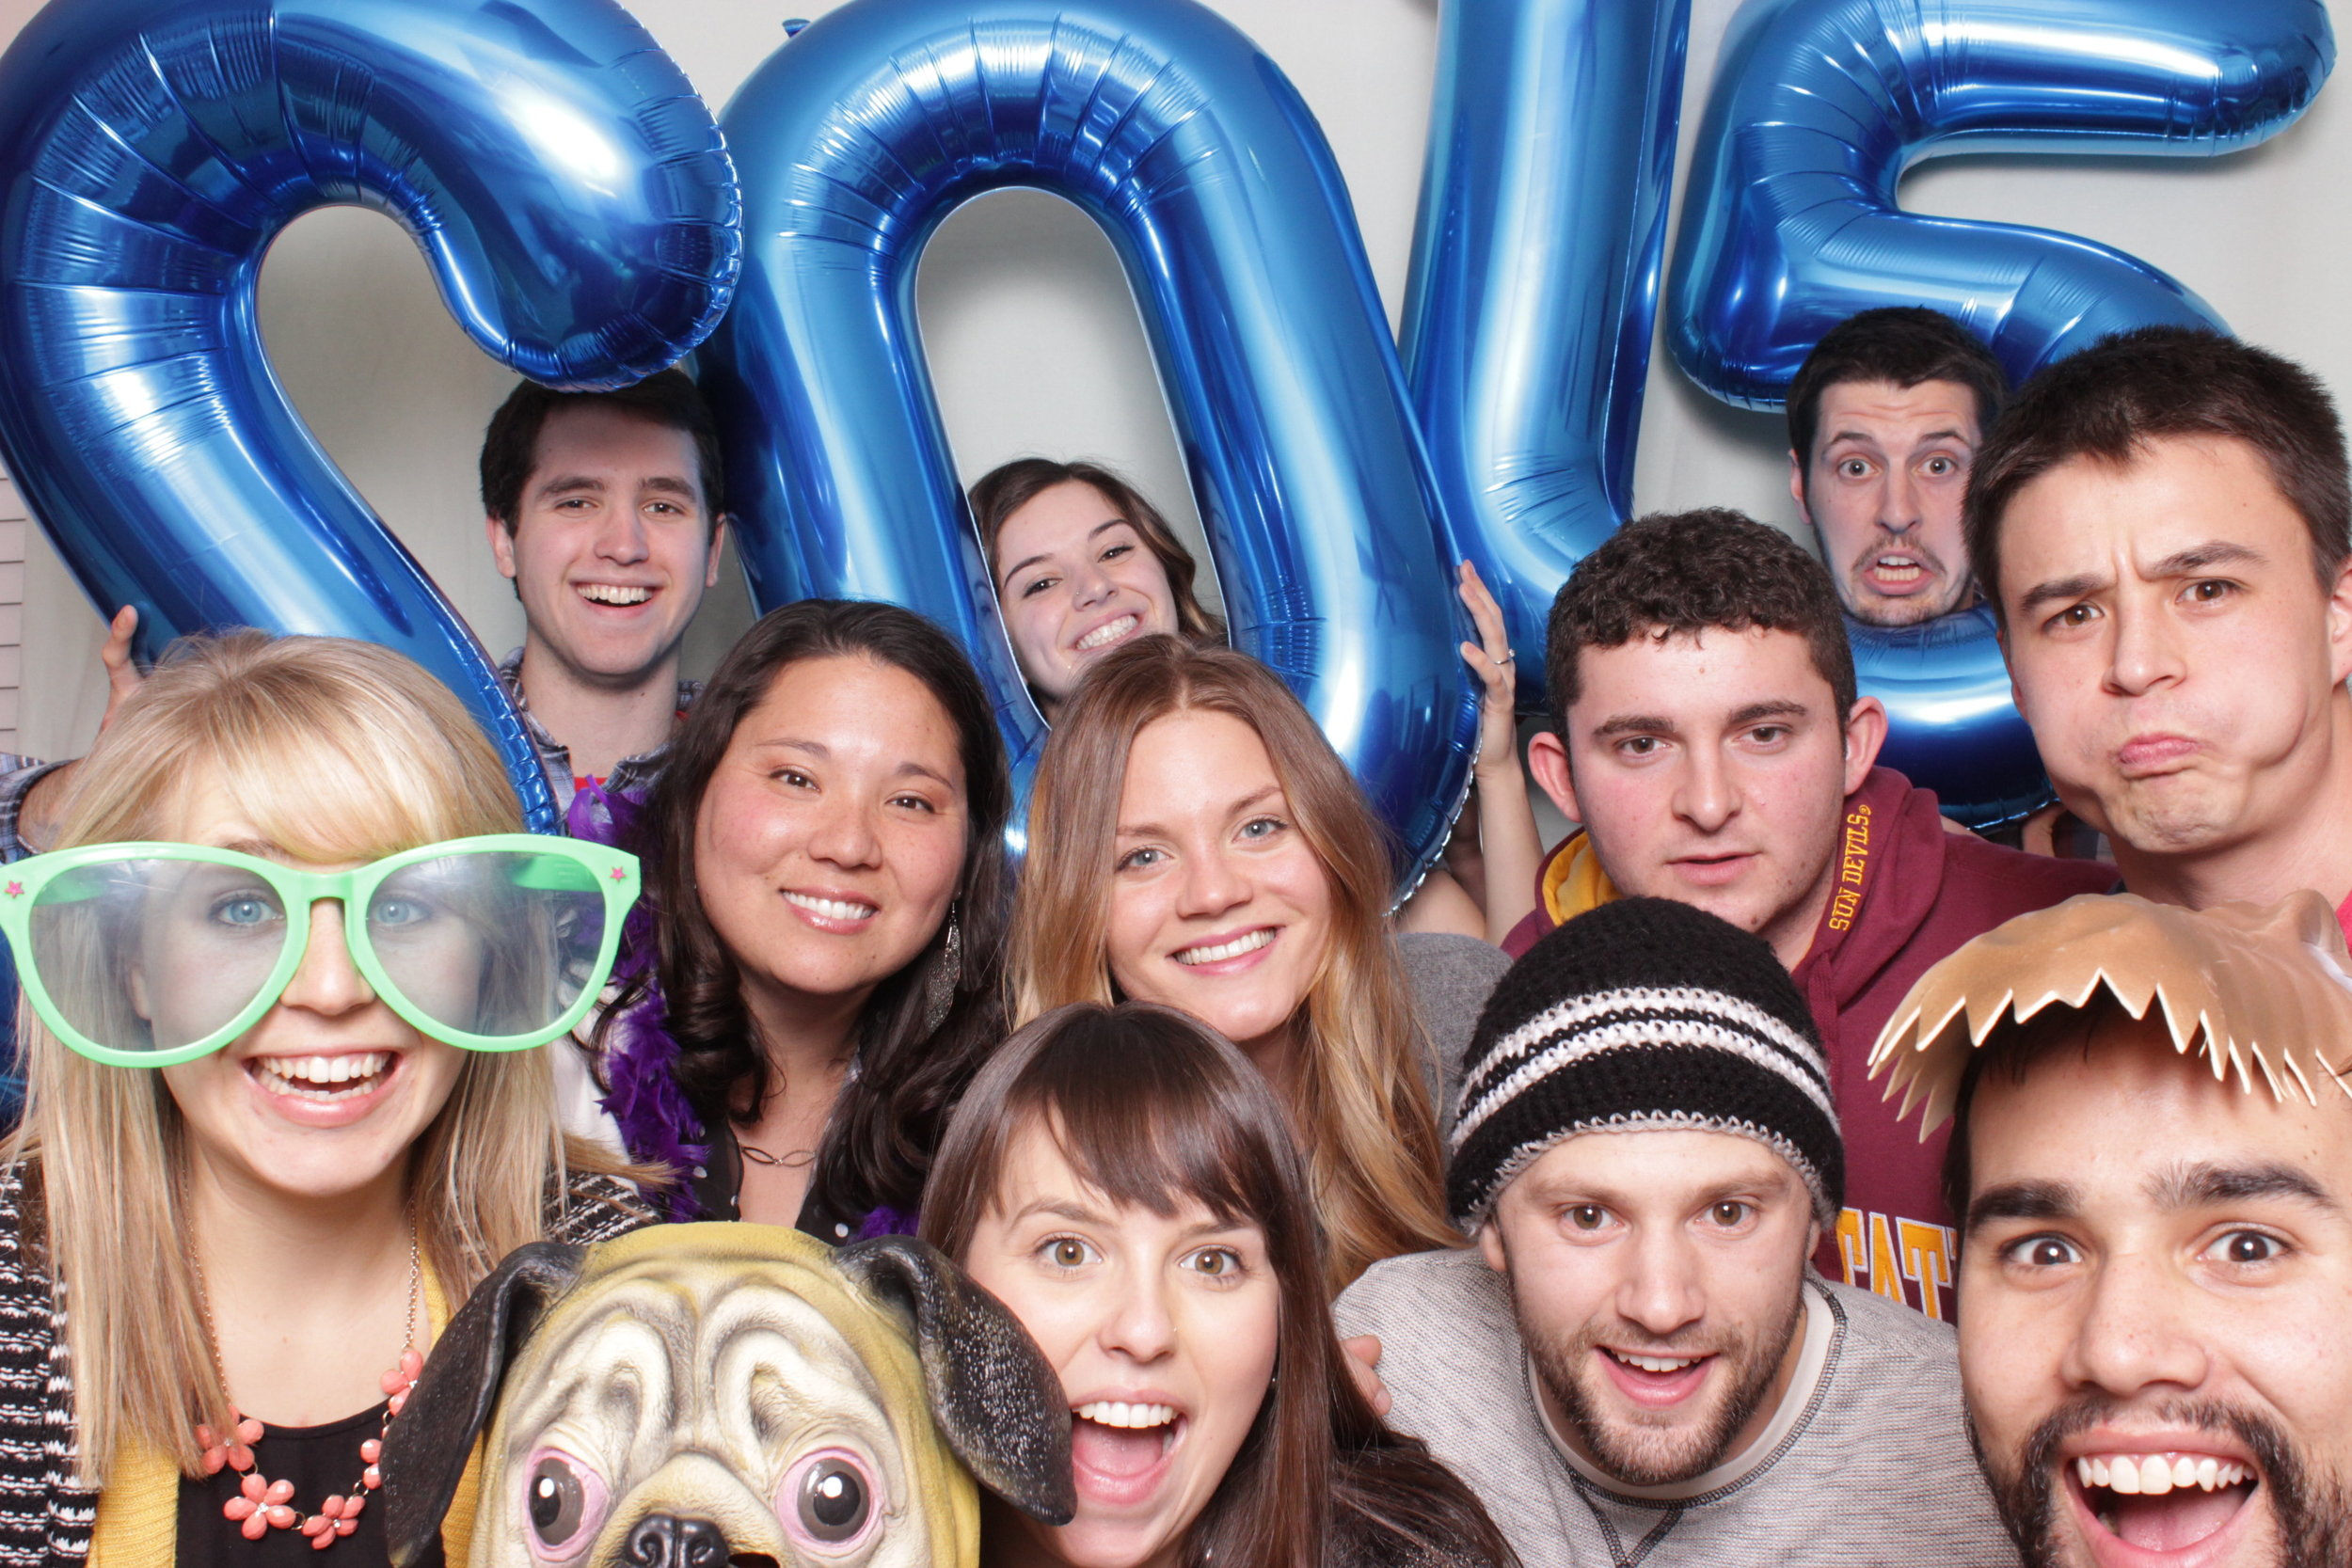 Group shot! Love getting shots like this in the open-air photo booththat you couldn't get in any other photo booth!